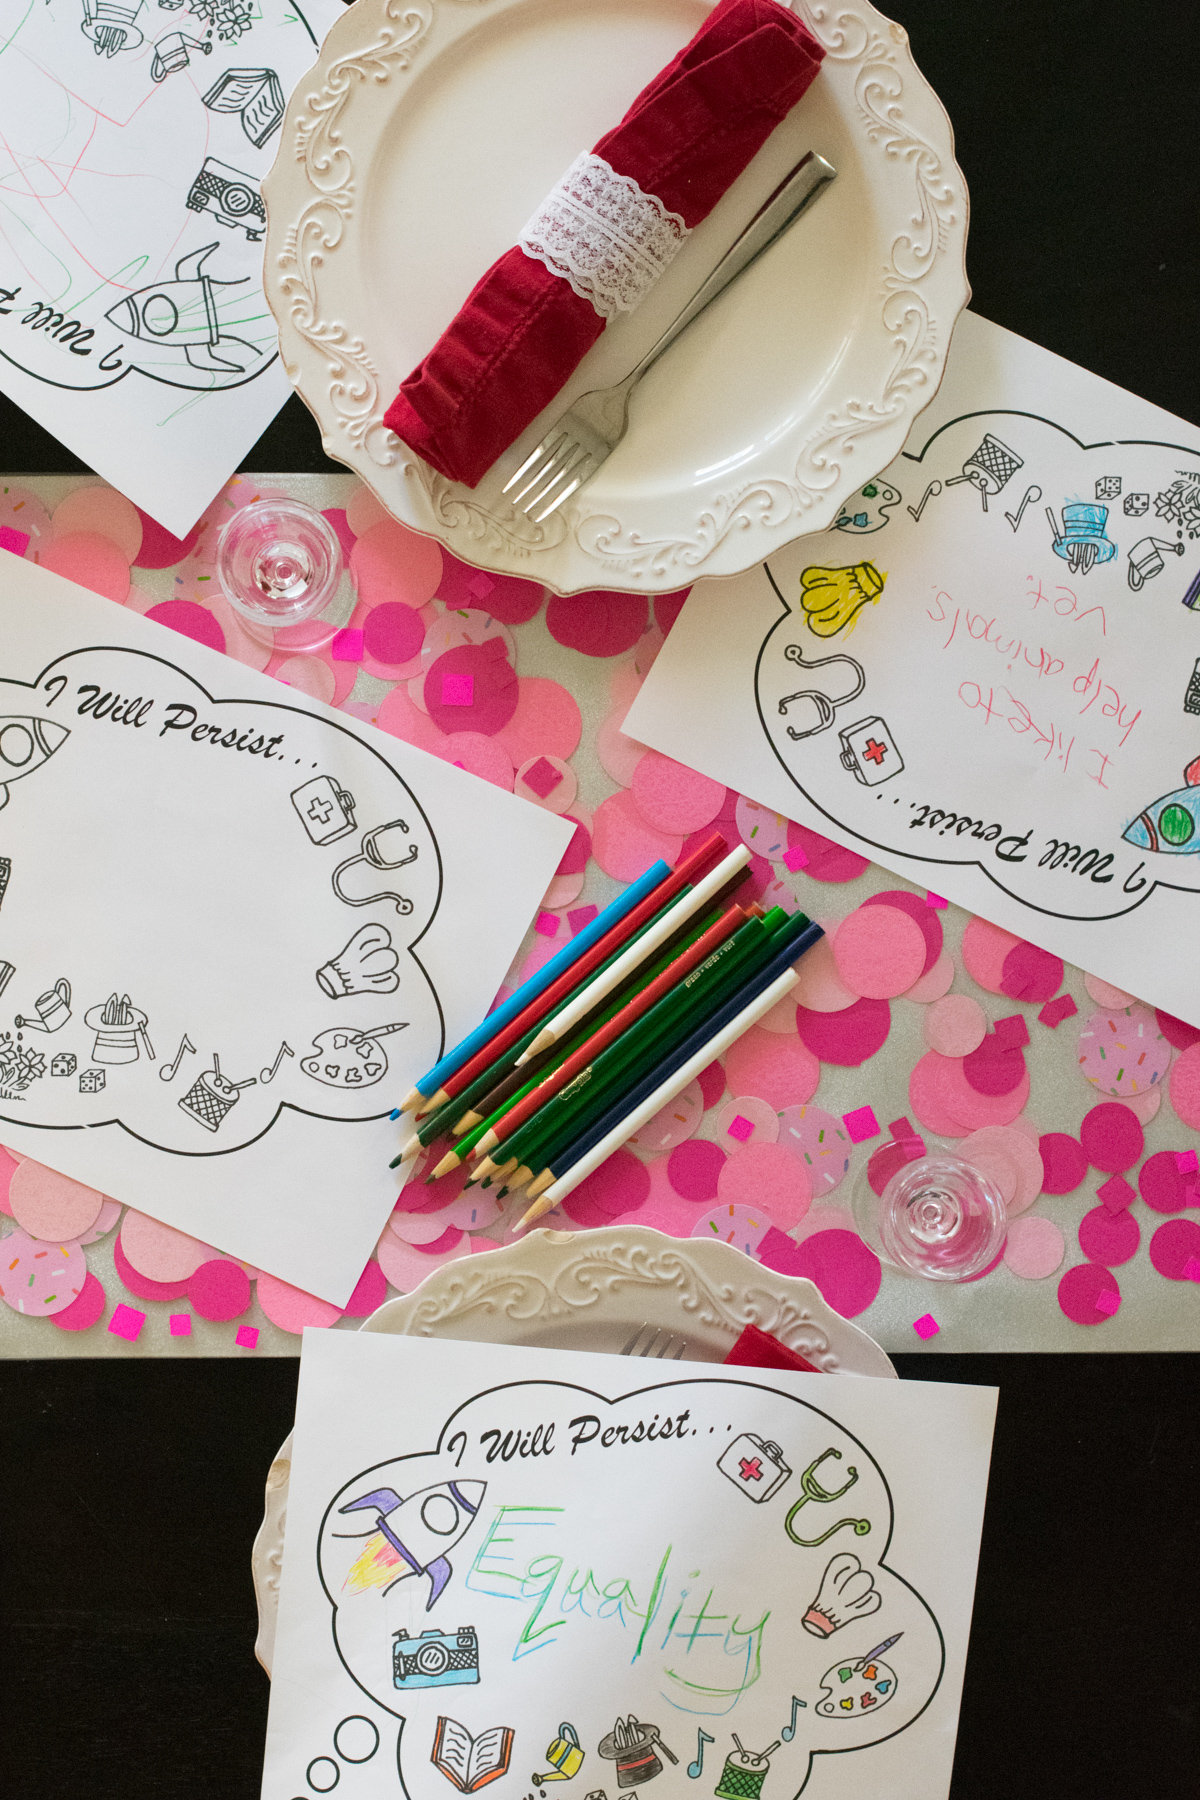 She Persisted - Tablescape - Chef Sarah Elizabeth